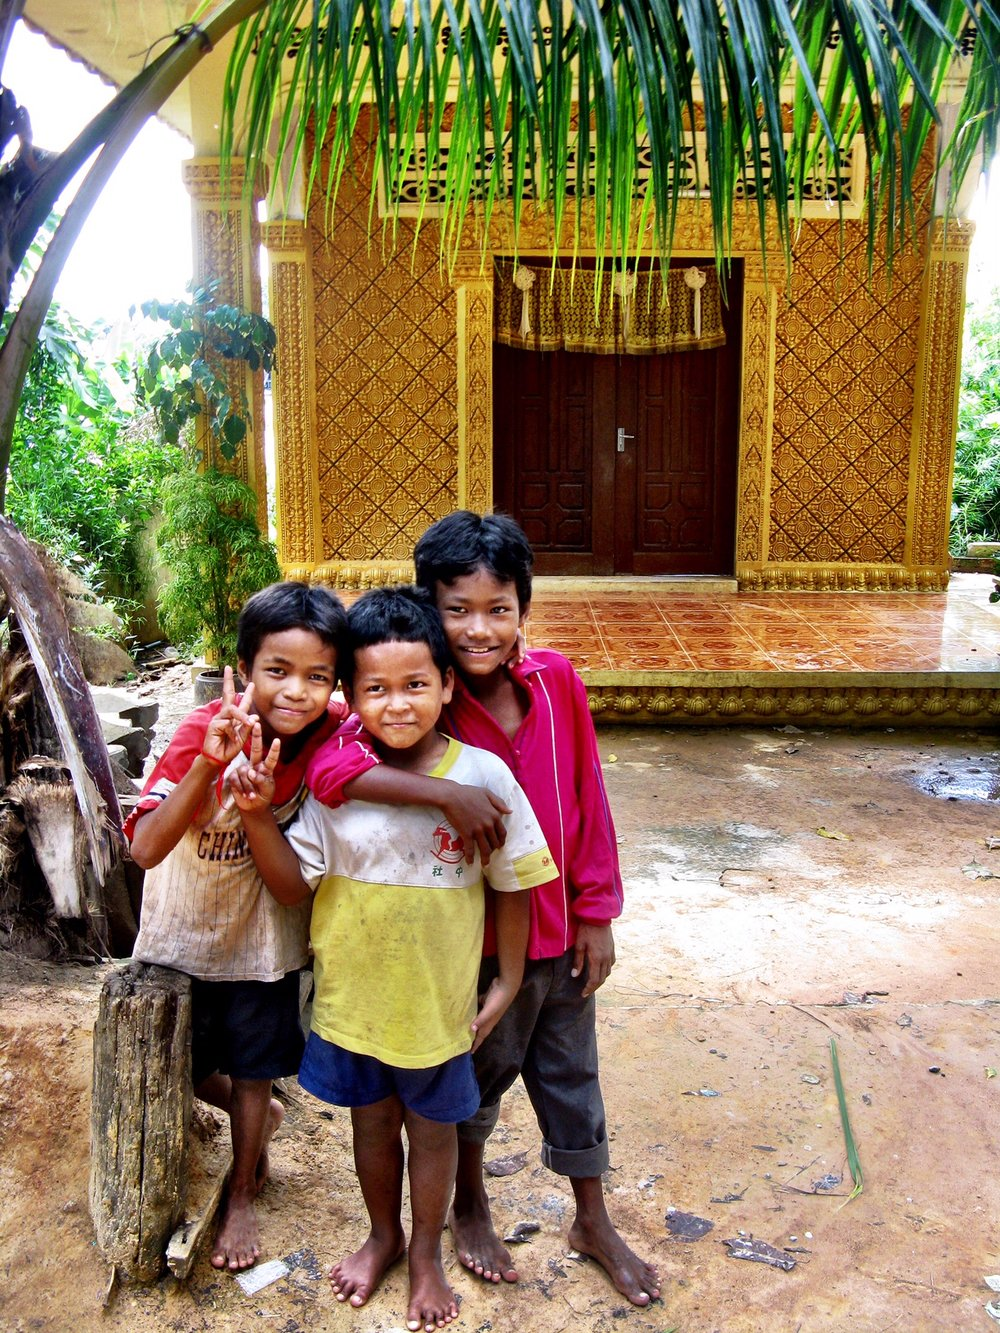 Three boys greet us on the grounds of the Buddhist monastary